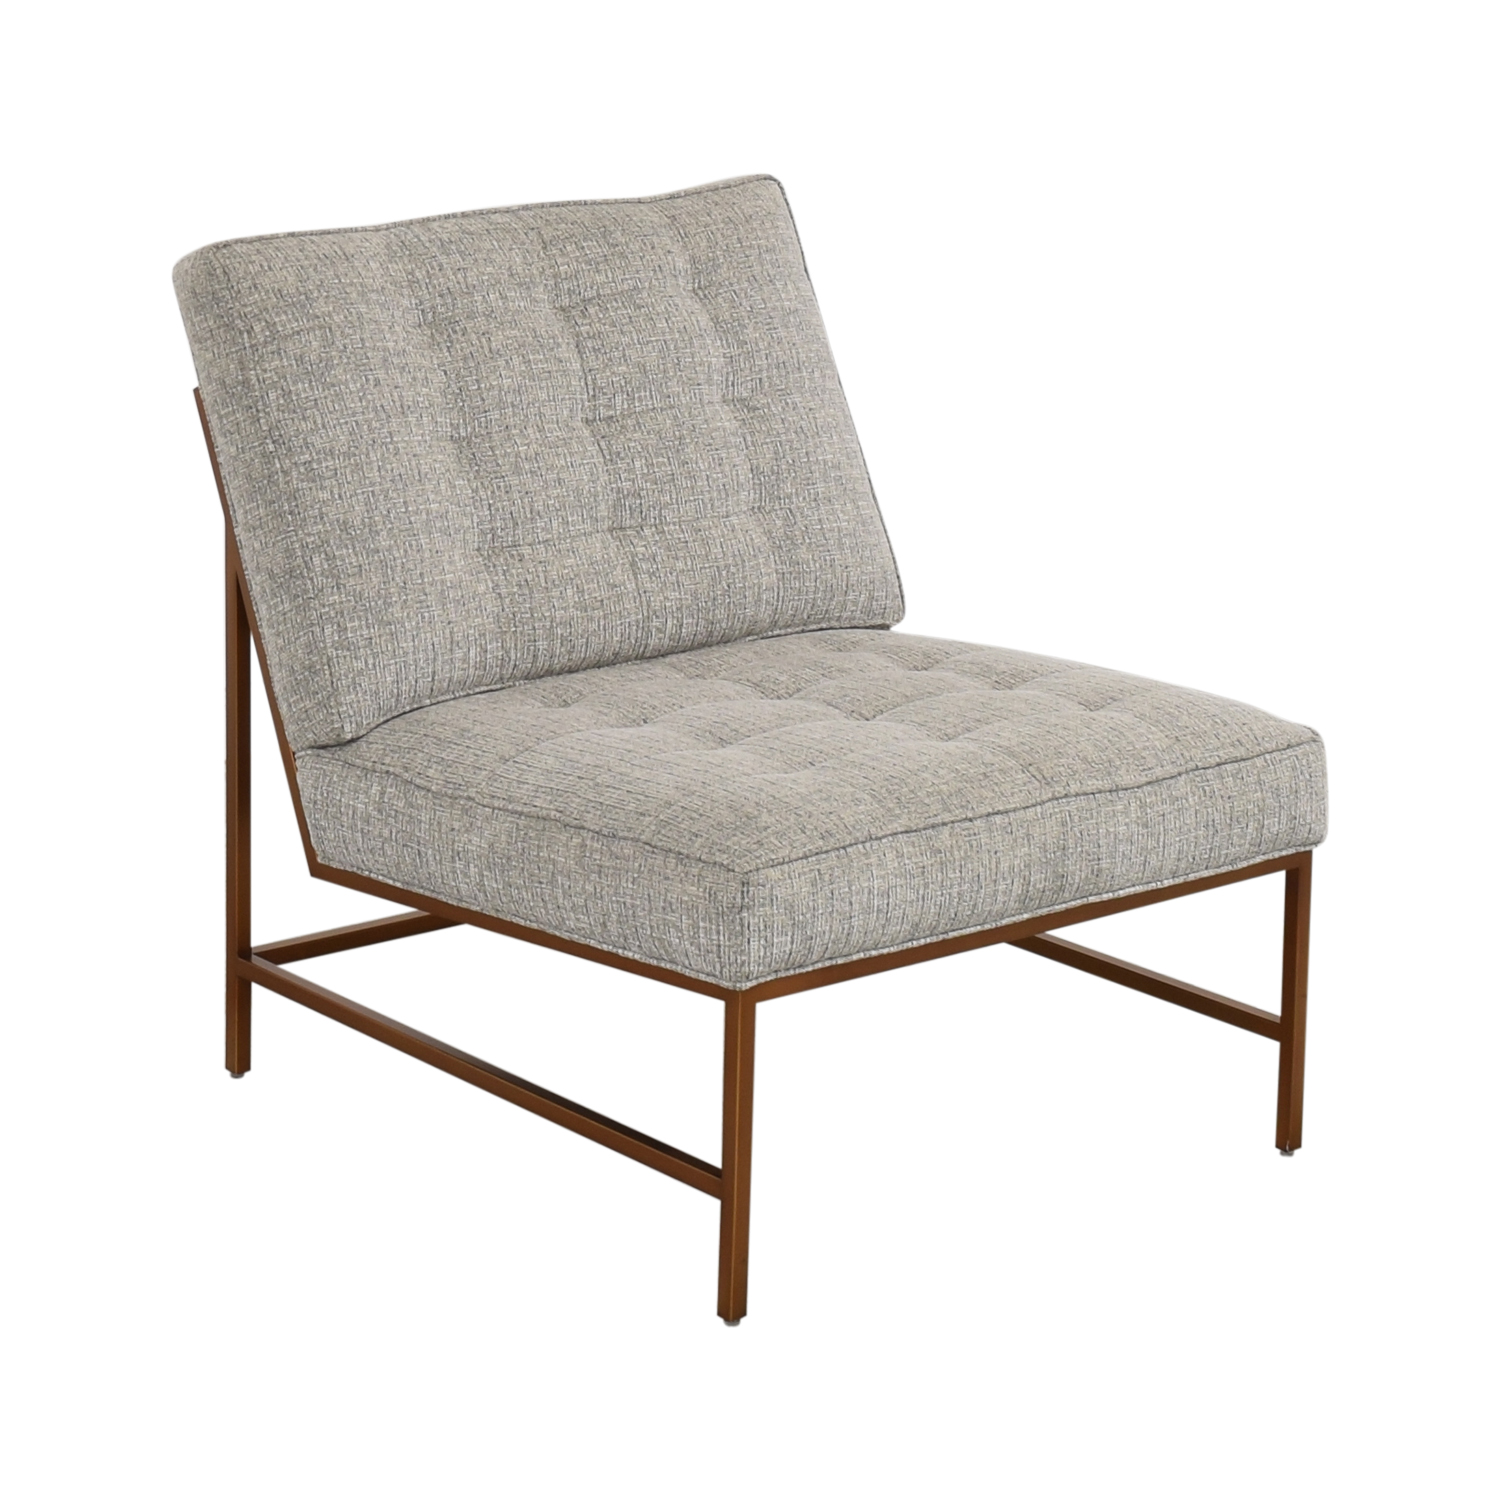 Mitchell Gold + Bob Williams Mitchell Gold + Bob Williams Major Lounge Chair for sale